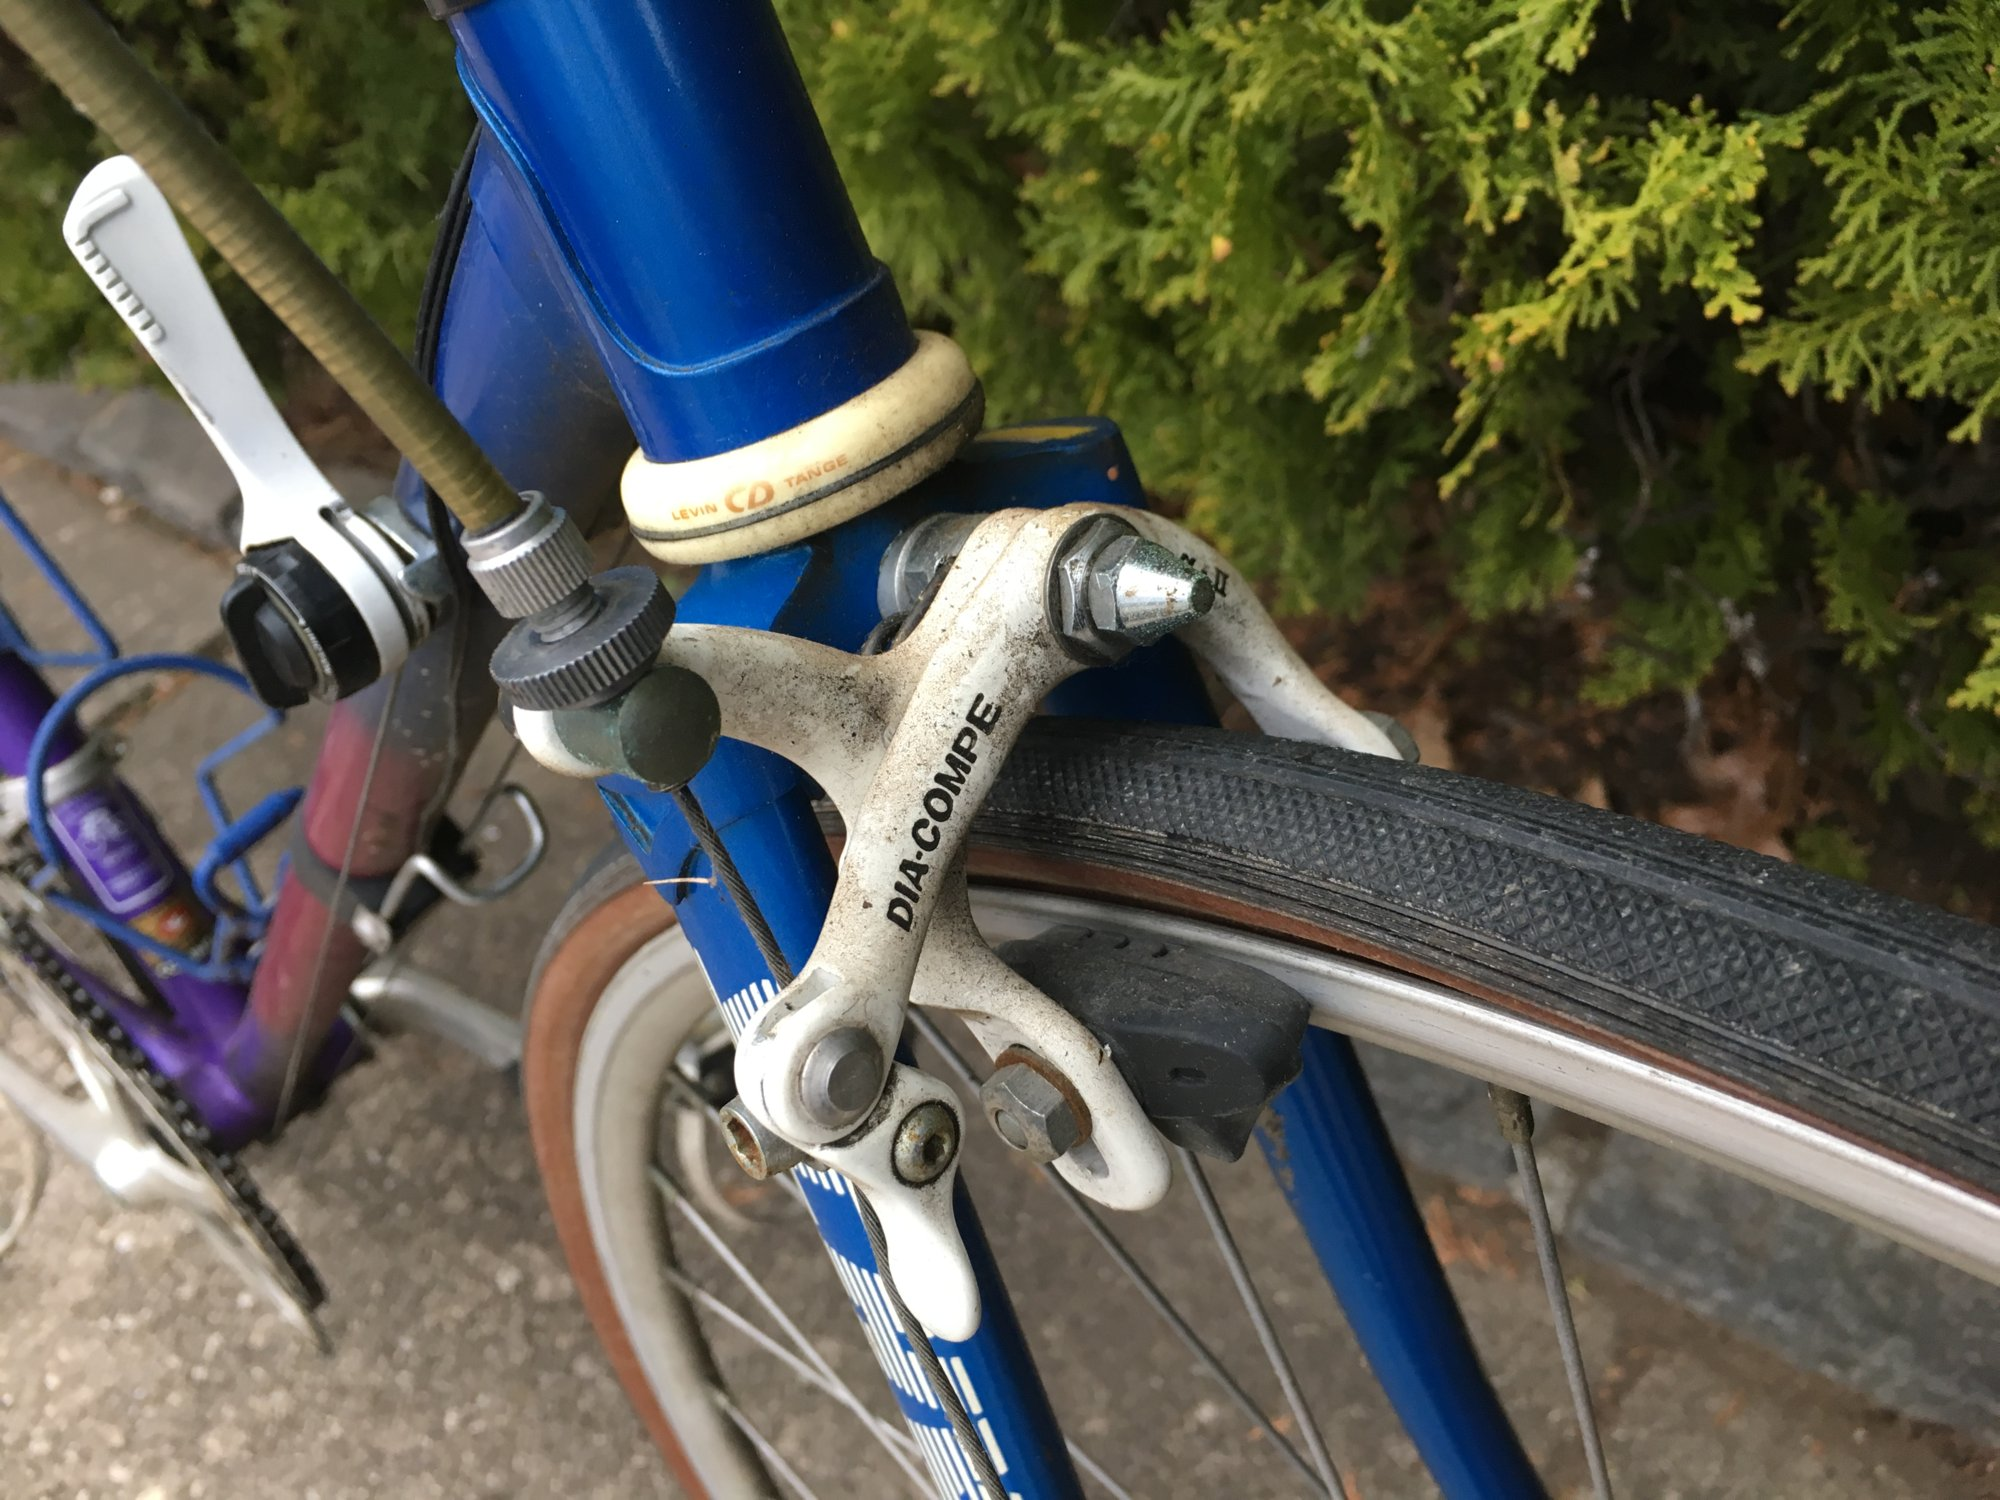 1988 Schwinn Premis   just bought it | The Classic and